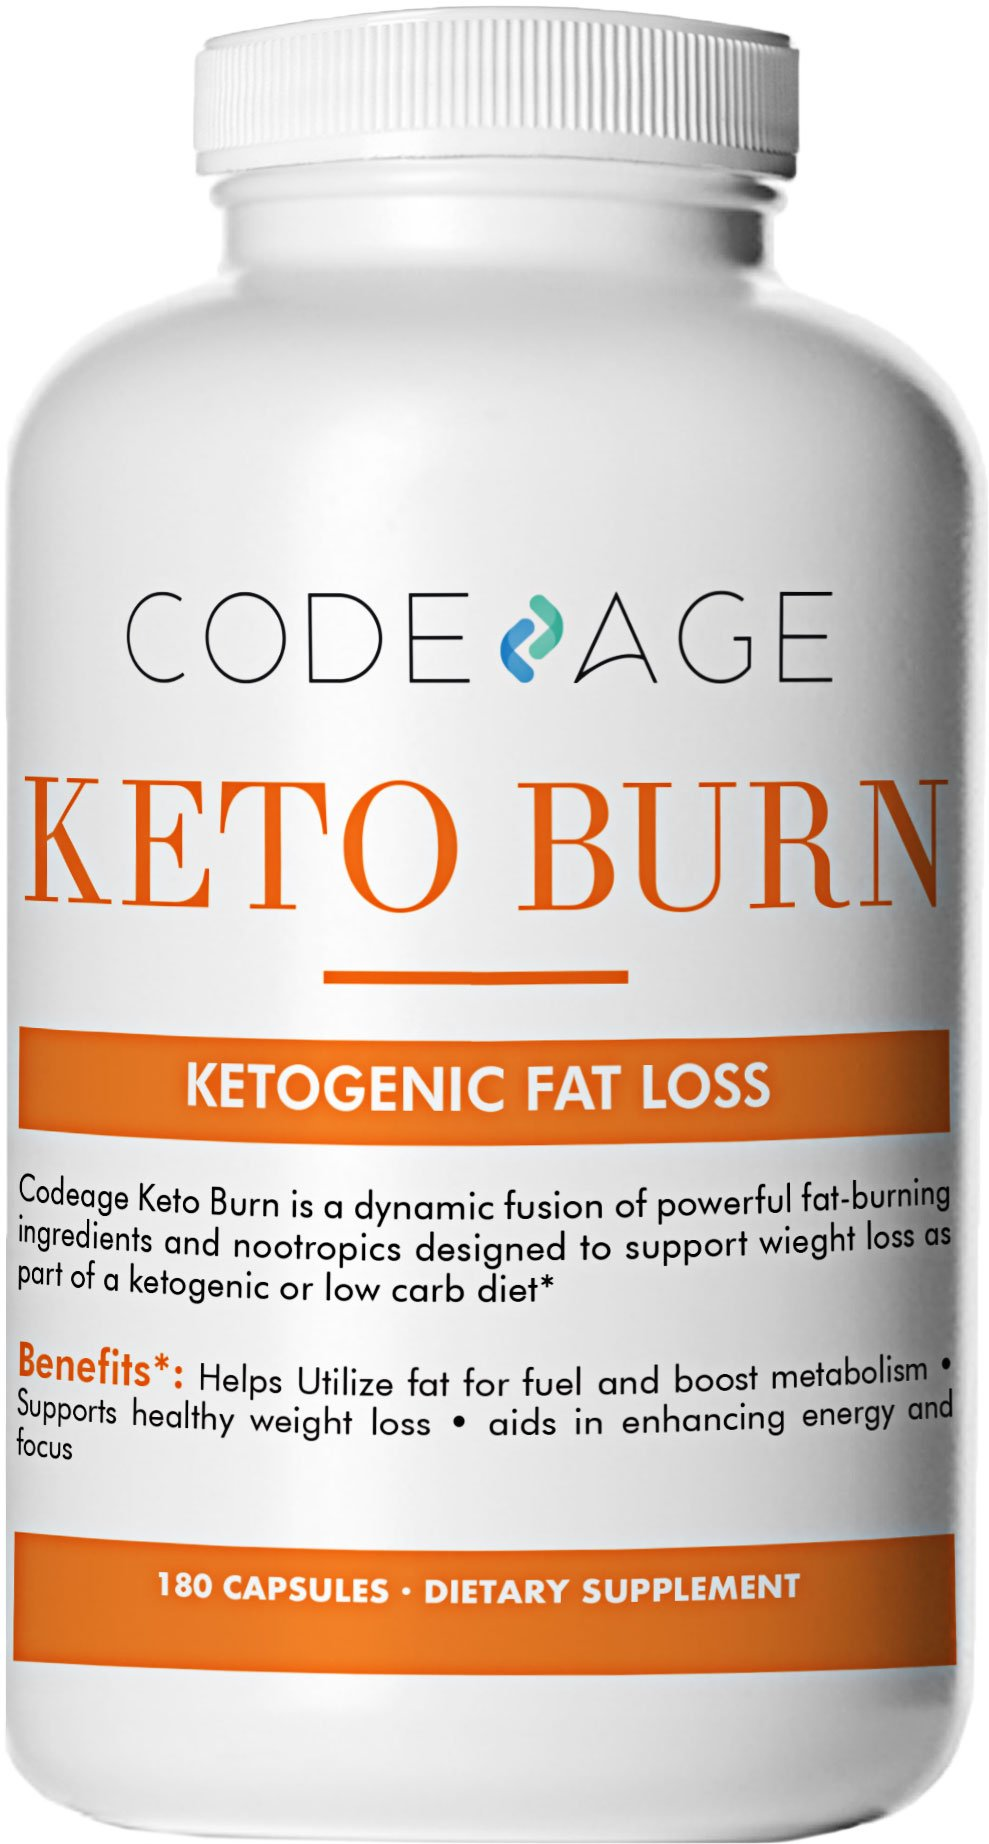 Keto Burn Capsules - 180 Count - Ketogenic Fat Burner and Nootropic Supplement - Supports Healthy Weight Loss, Mental Focus & Clarity - L Theanine, Bacopa Monnieri & More